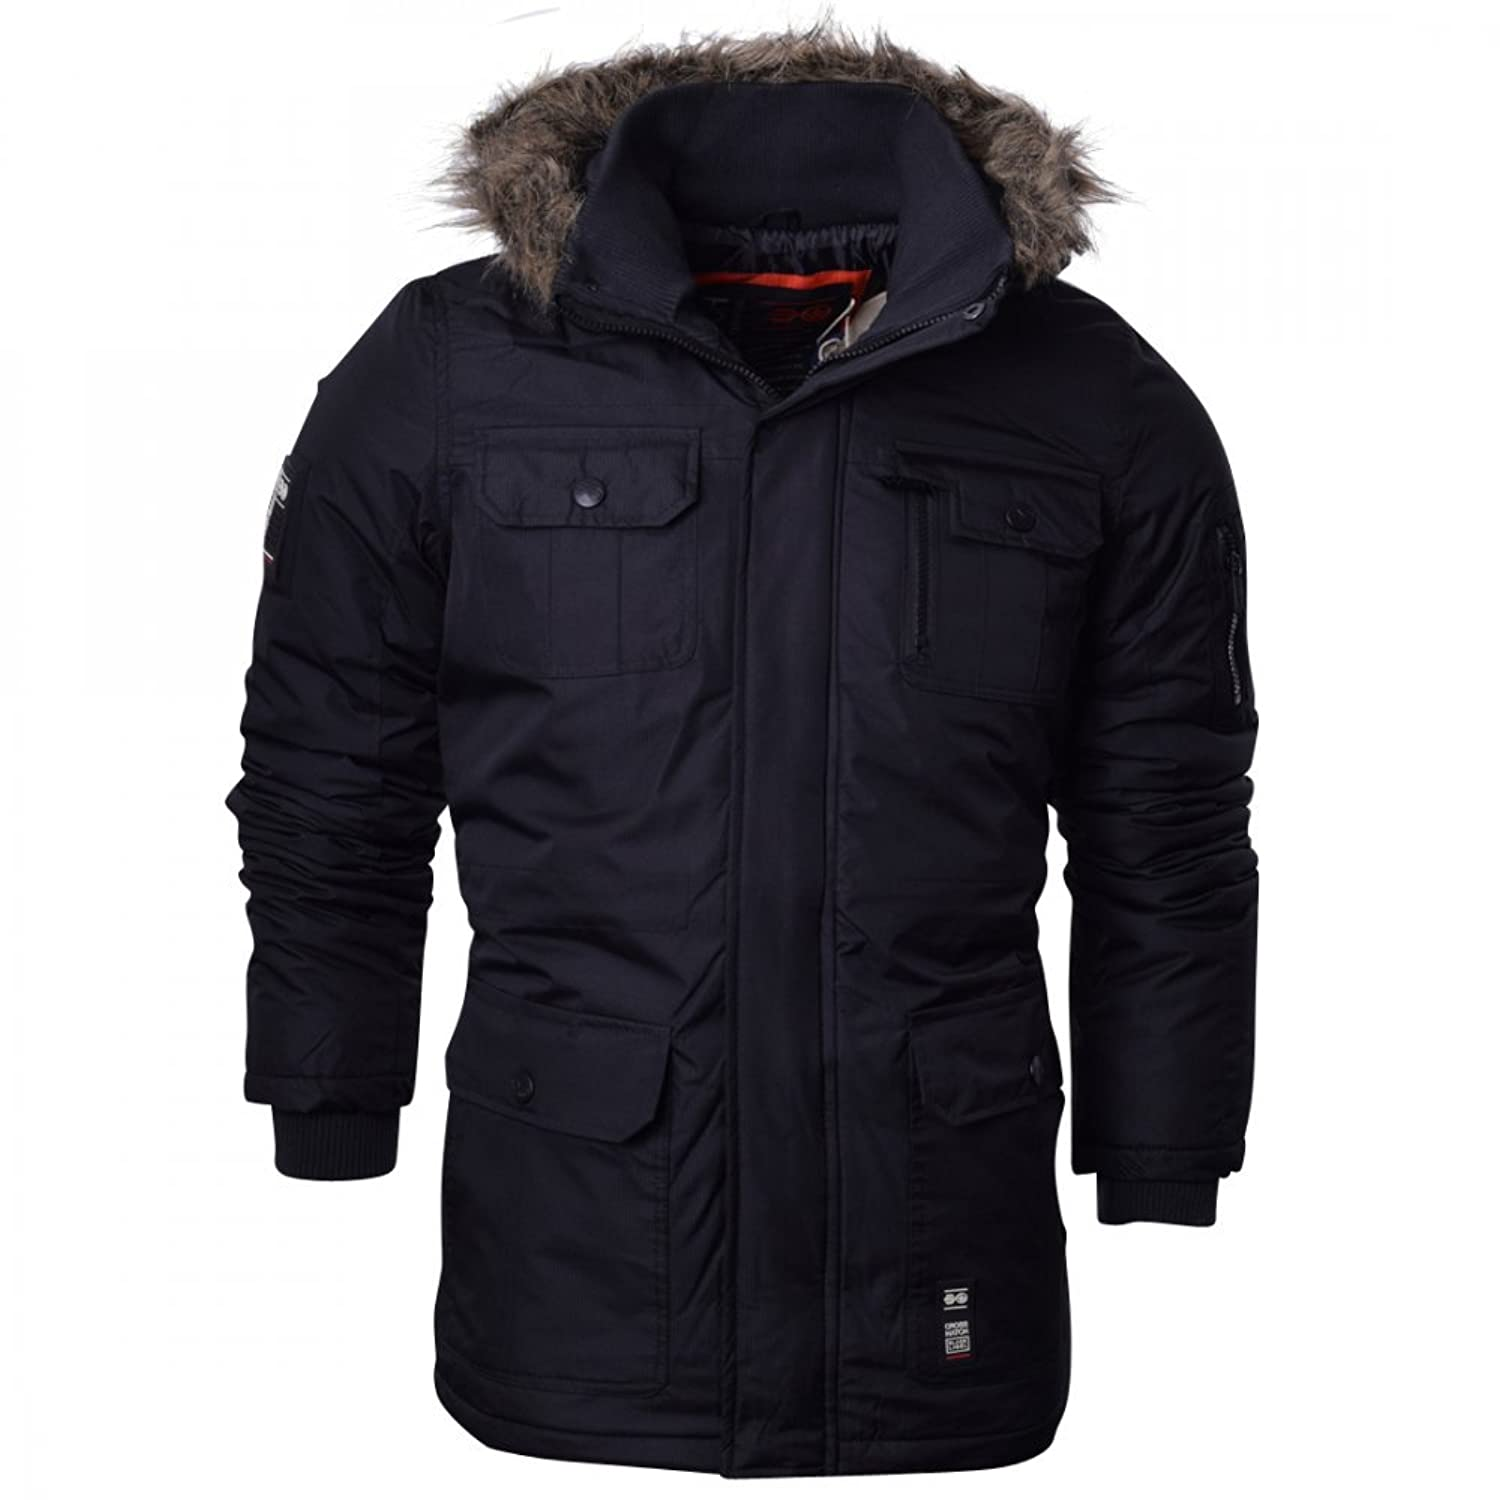 Men's Outerwear : Amazon.co.uk